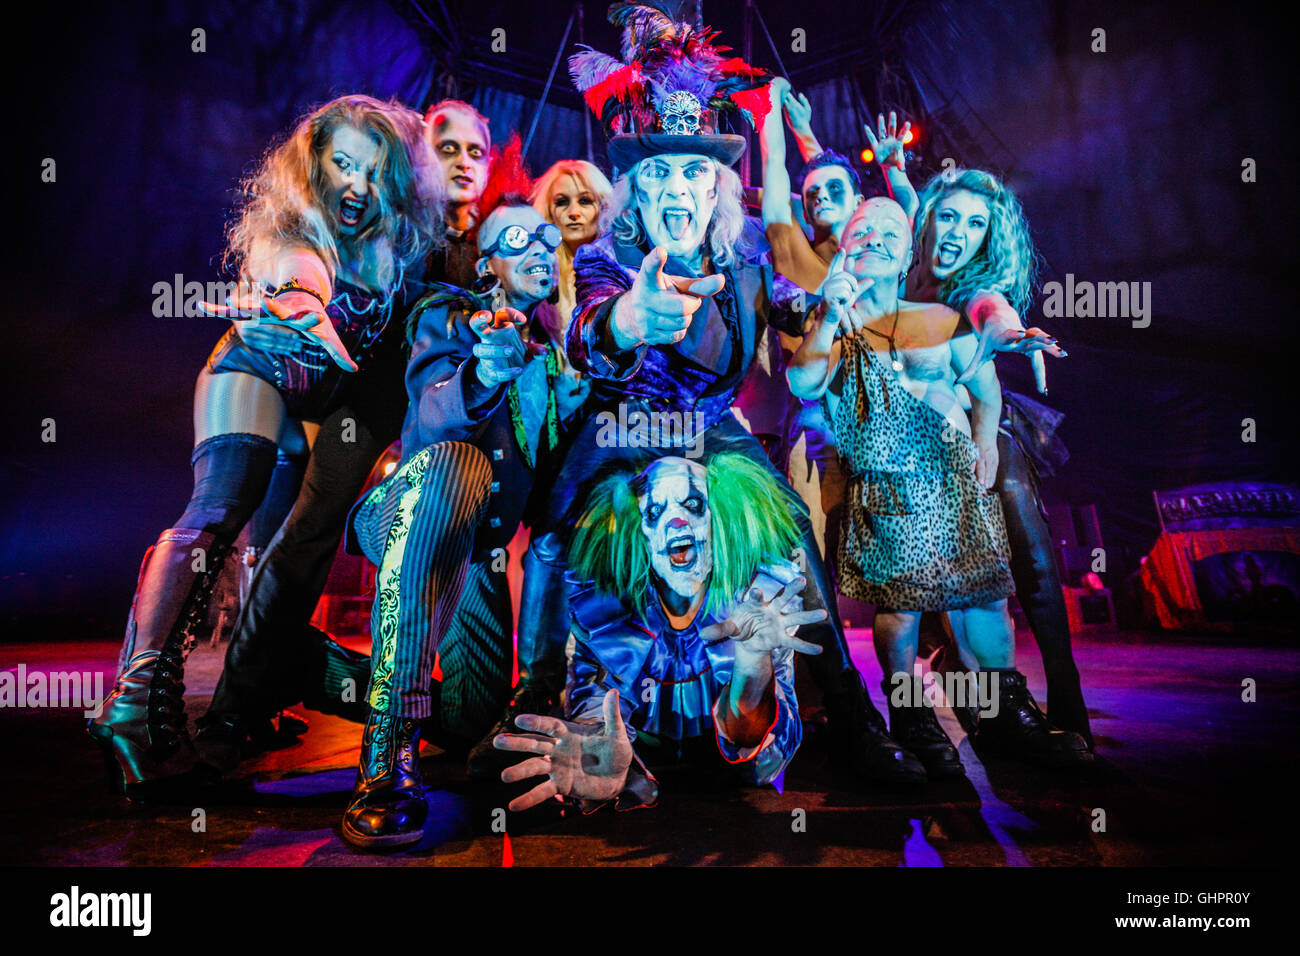 Circus of Horrors cast: key performers from the hit show, The Circus of Horrors during their 2015 touring show 'CarnEvil'. - Stock Image